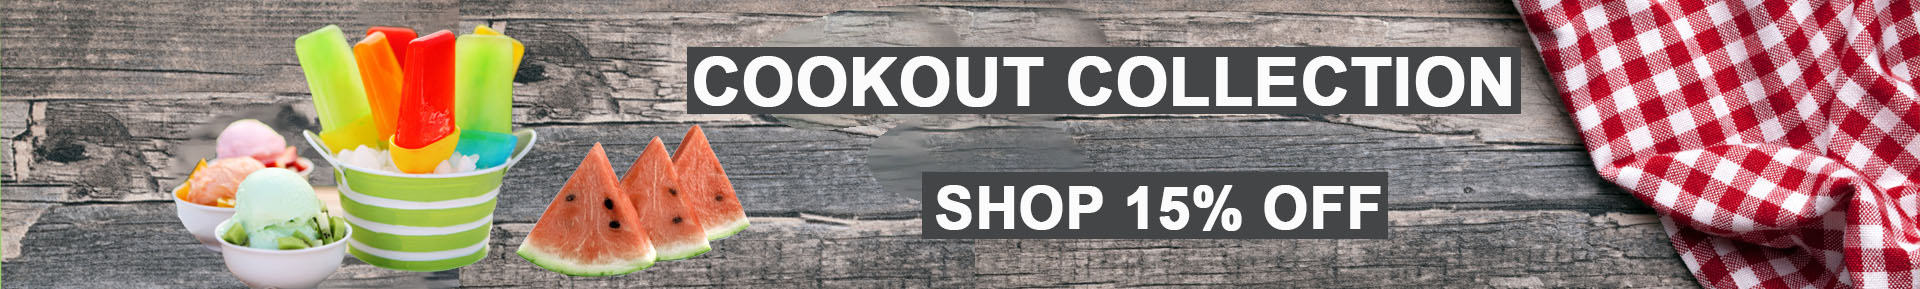 Cookout Collection Sale